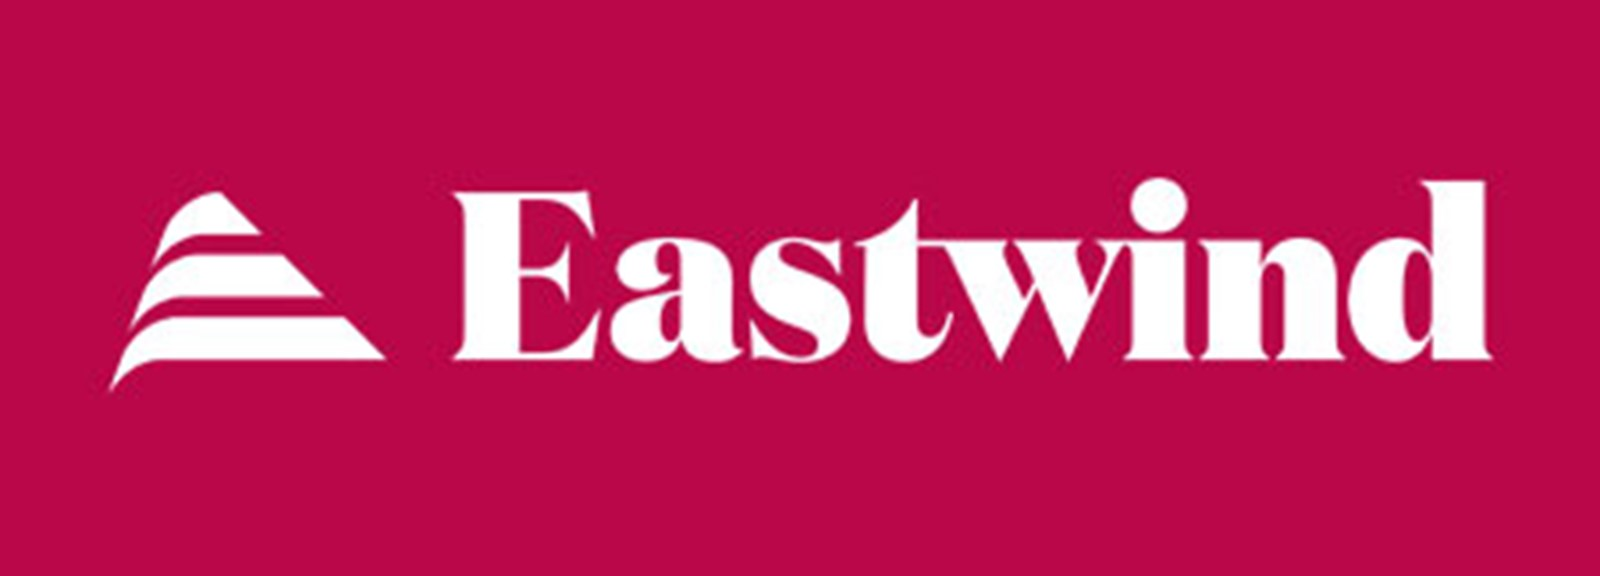 Eastwind Yachts